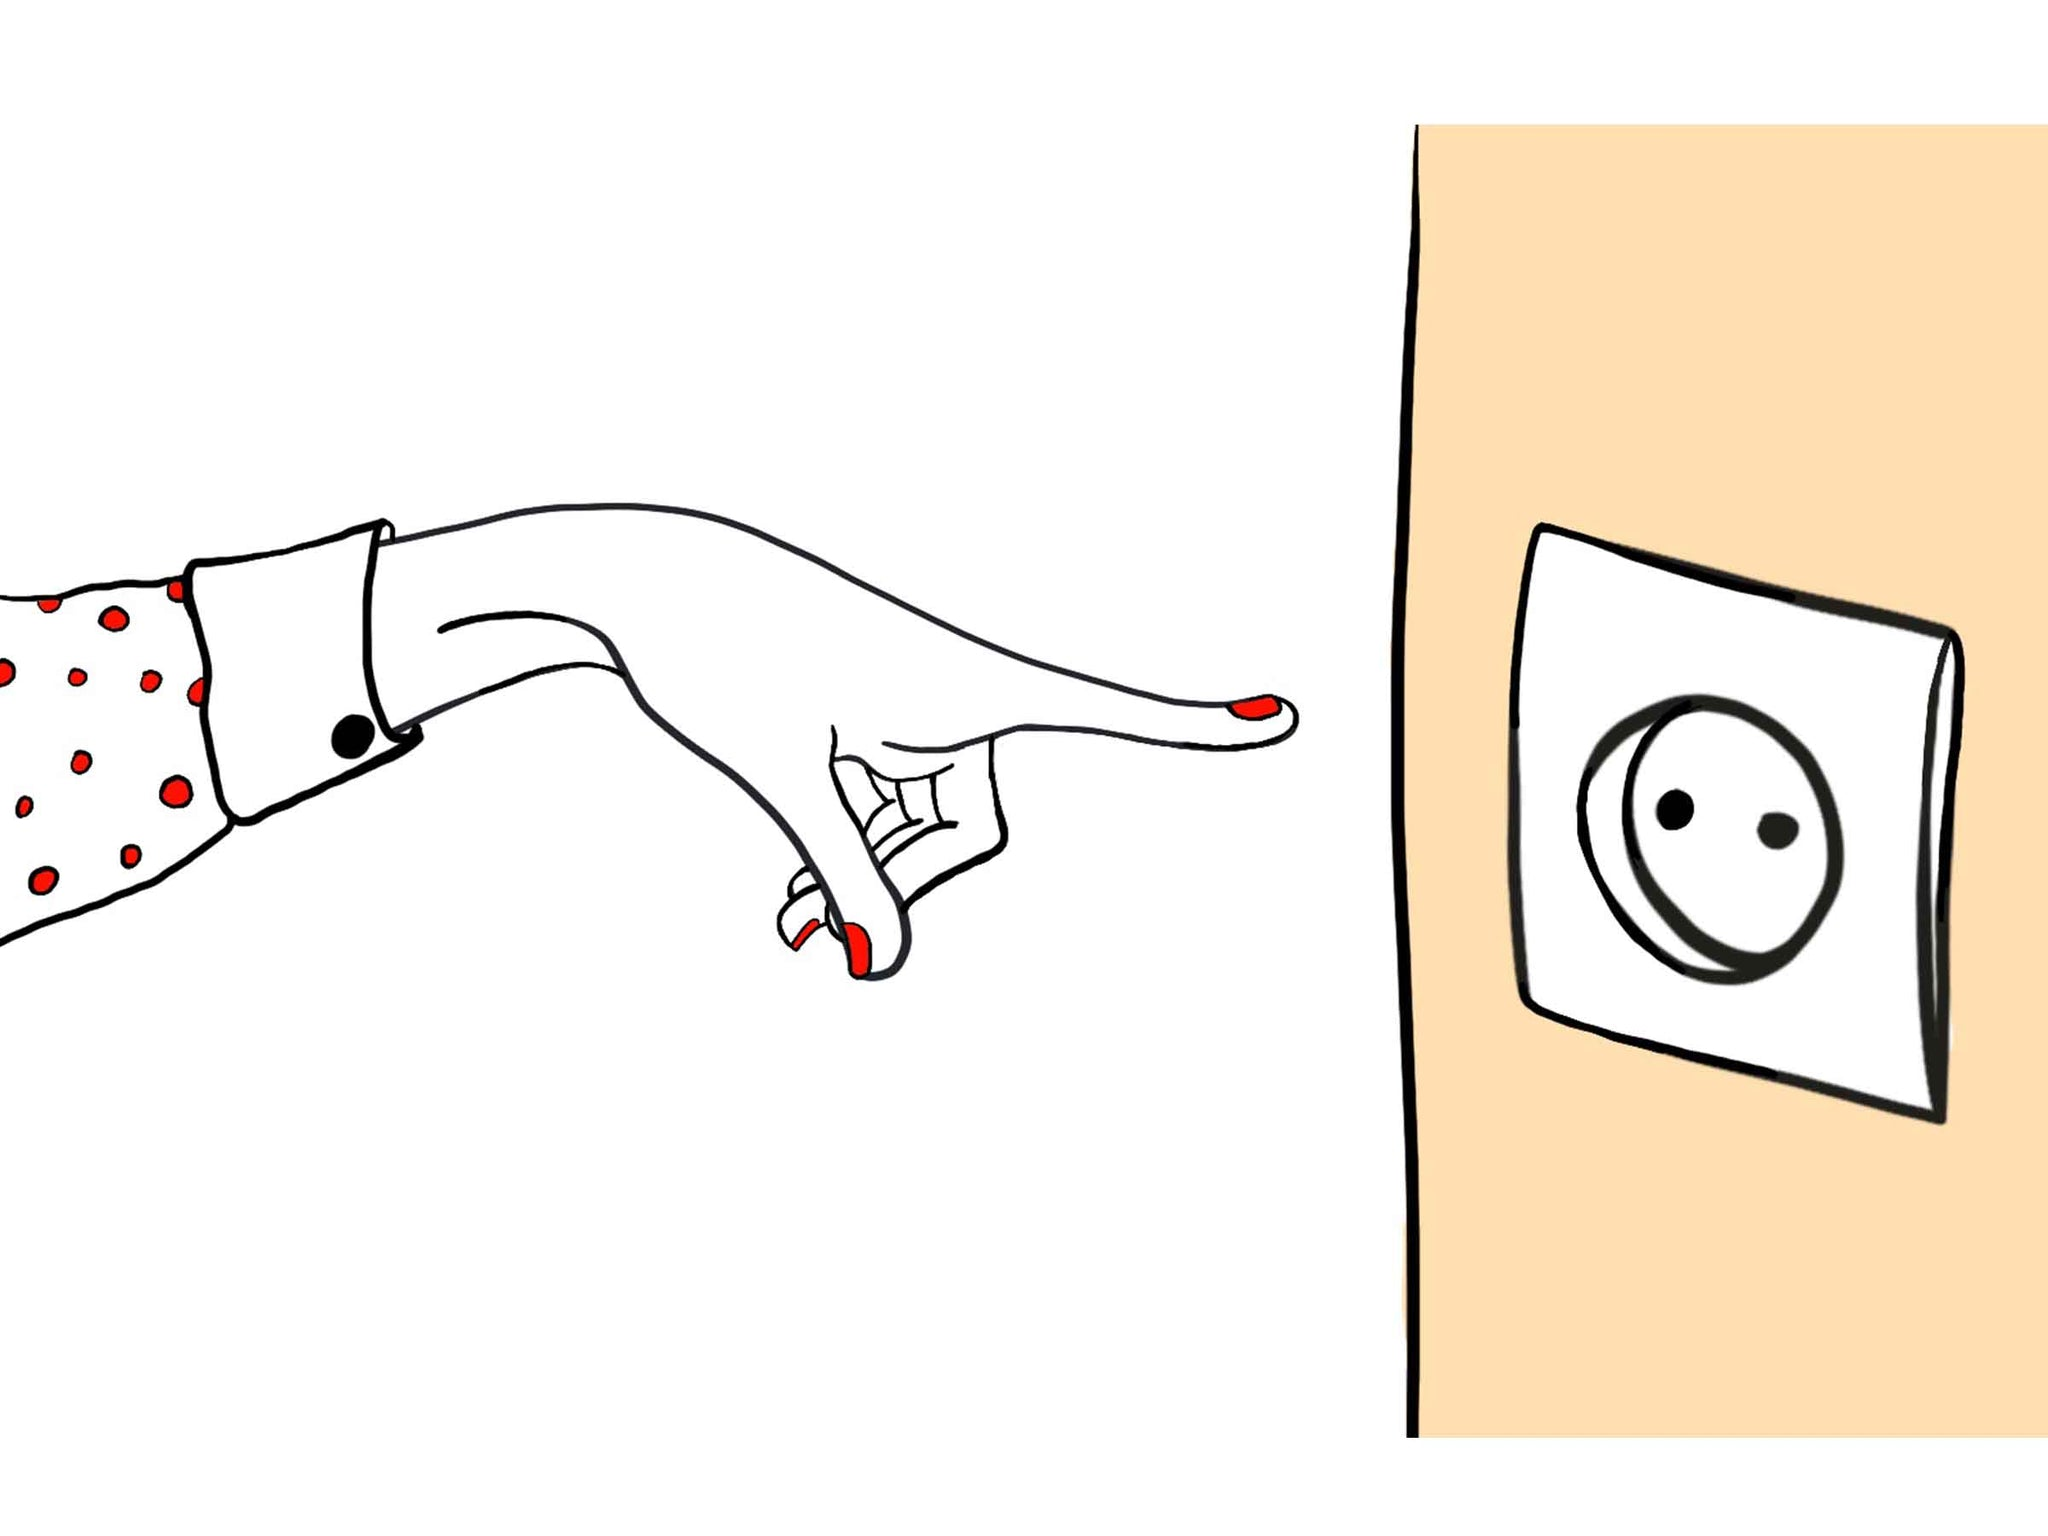 An illustration of a hand pointing a finger towards a socket